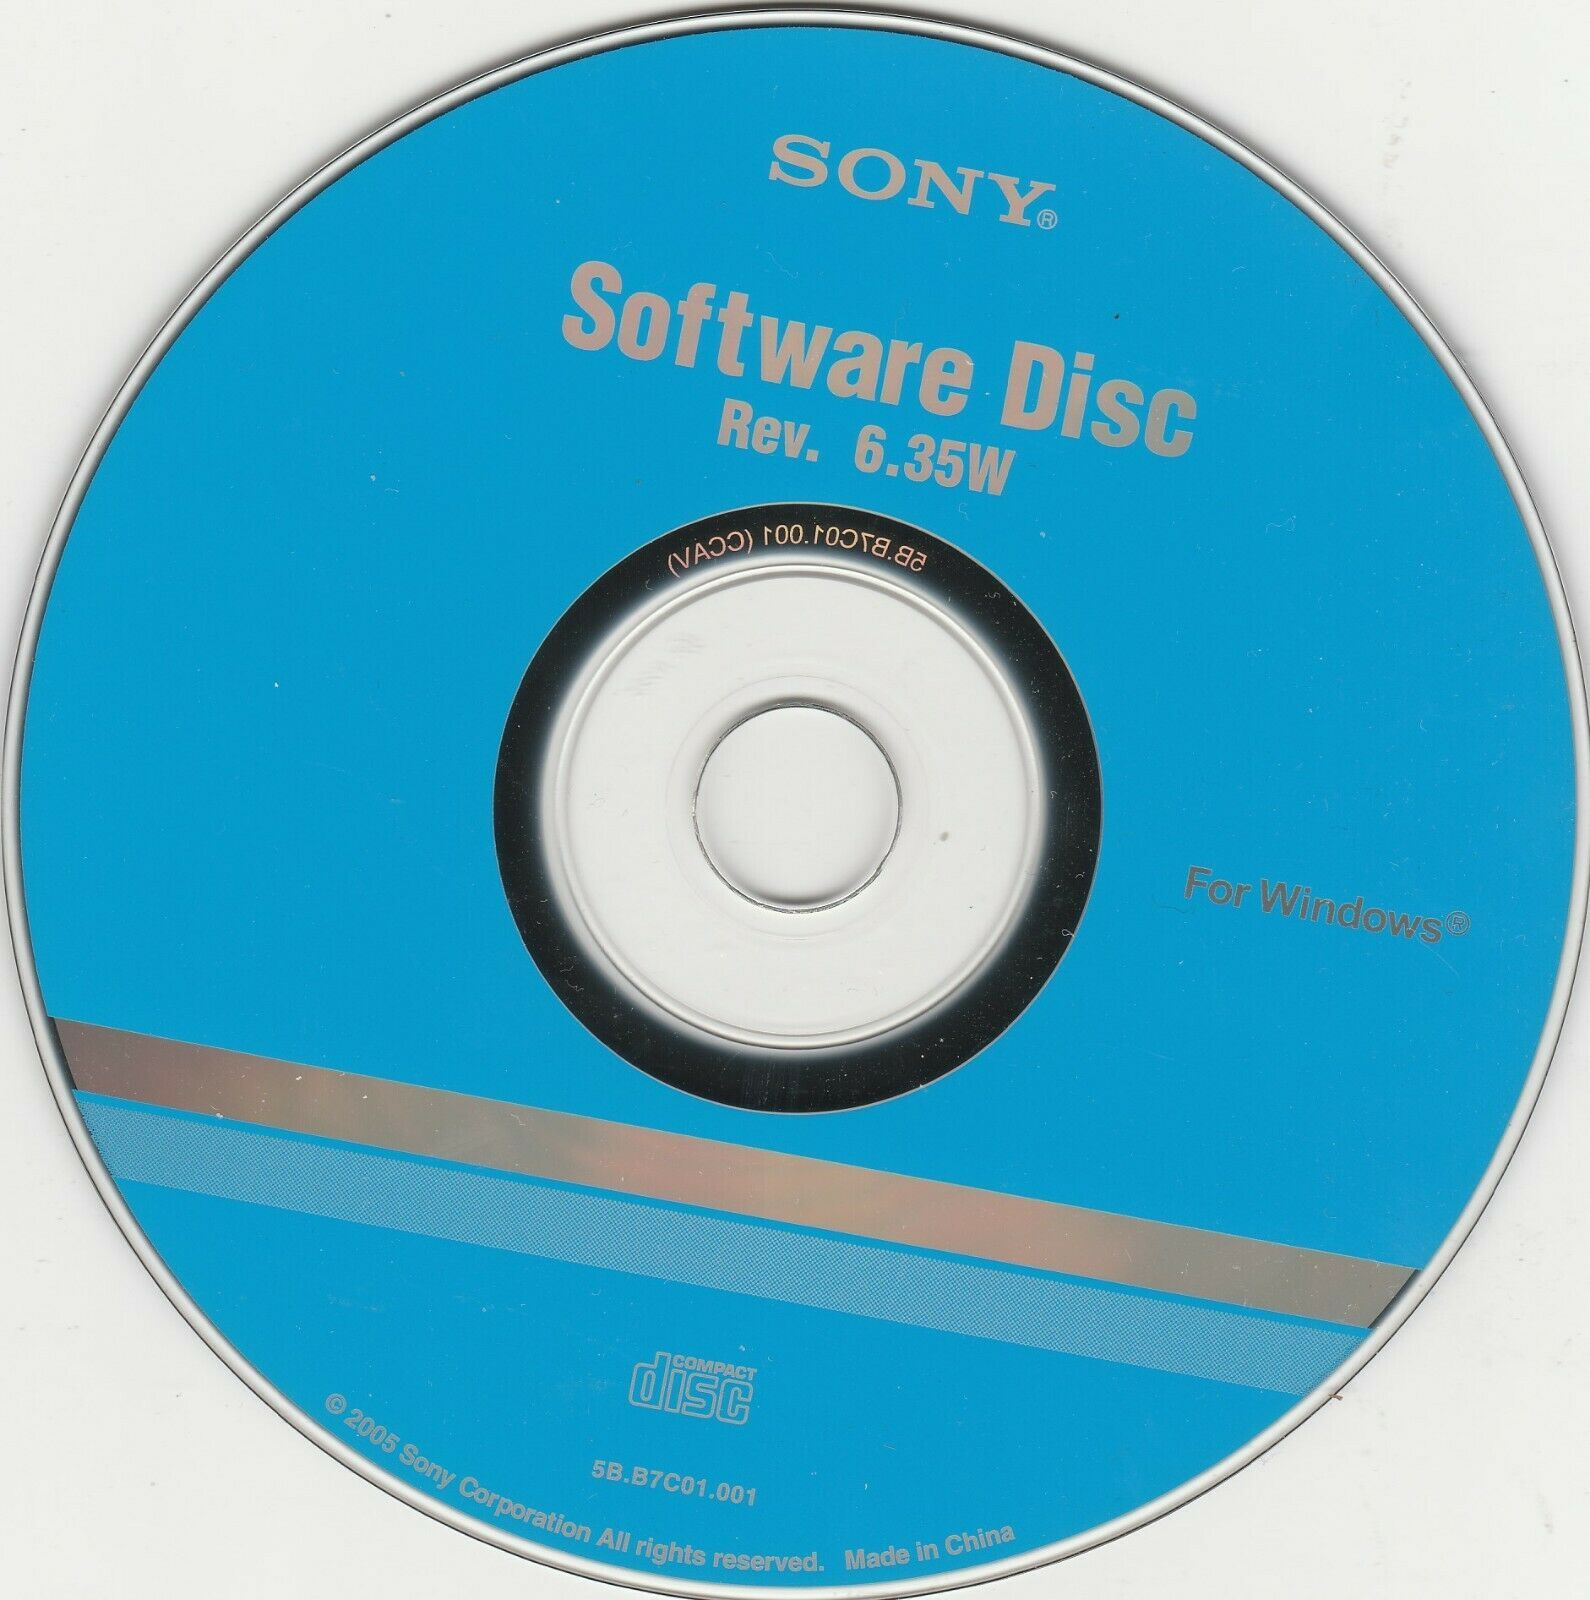 Primary image for Software Disc CD-Rom Disc Rev. 6.35W by Sony for WINDOWS ~ 2005